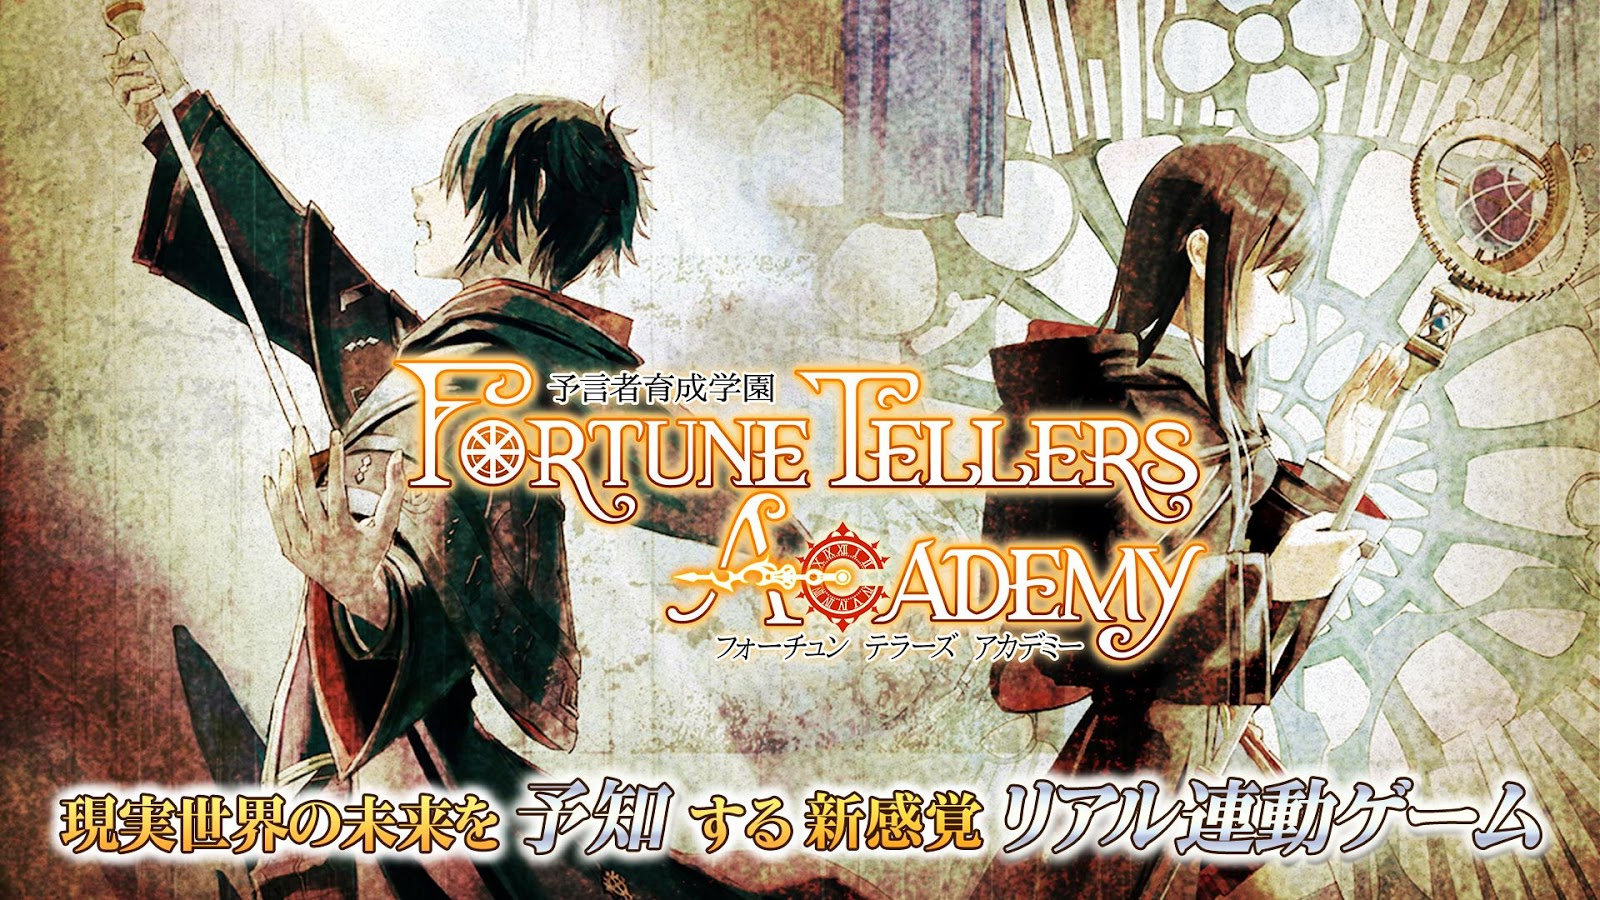 予言者育成学園Fortune Tellers Academy- screenshot